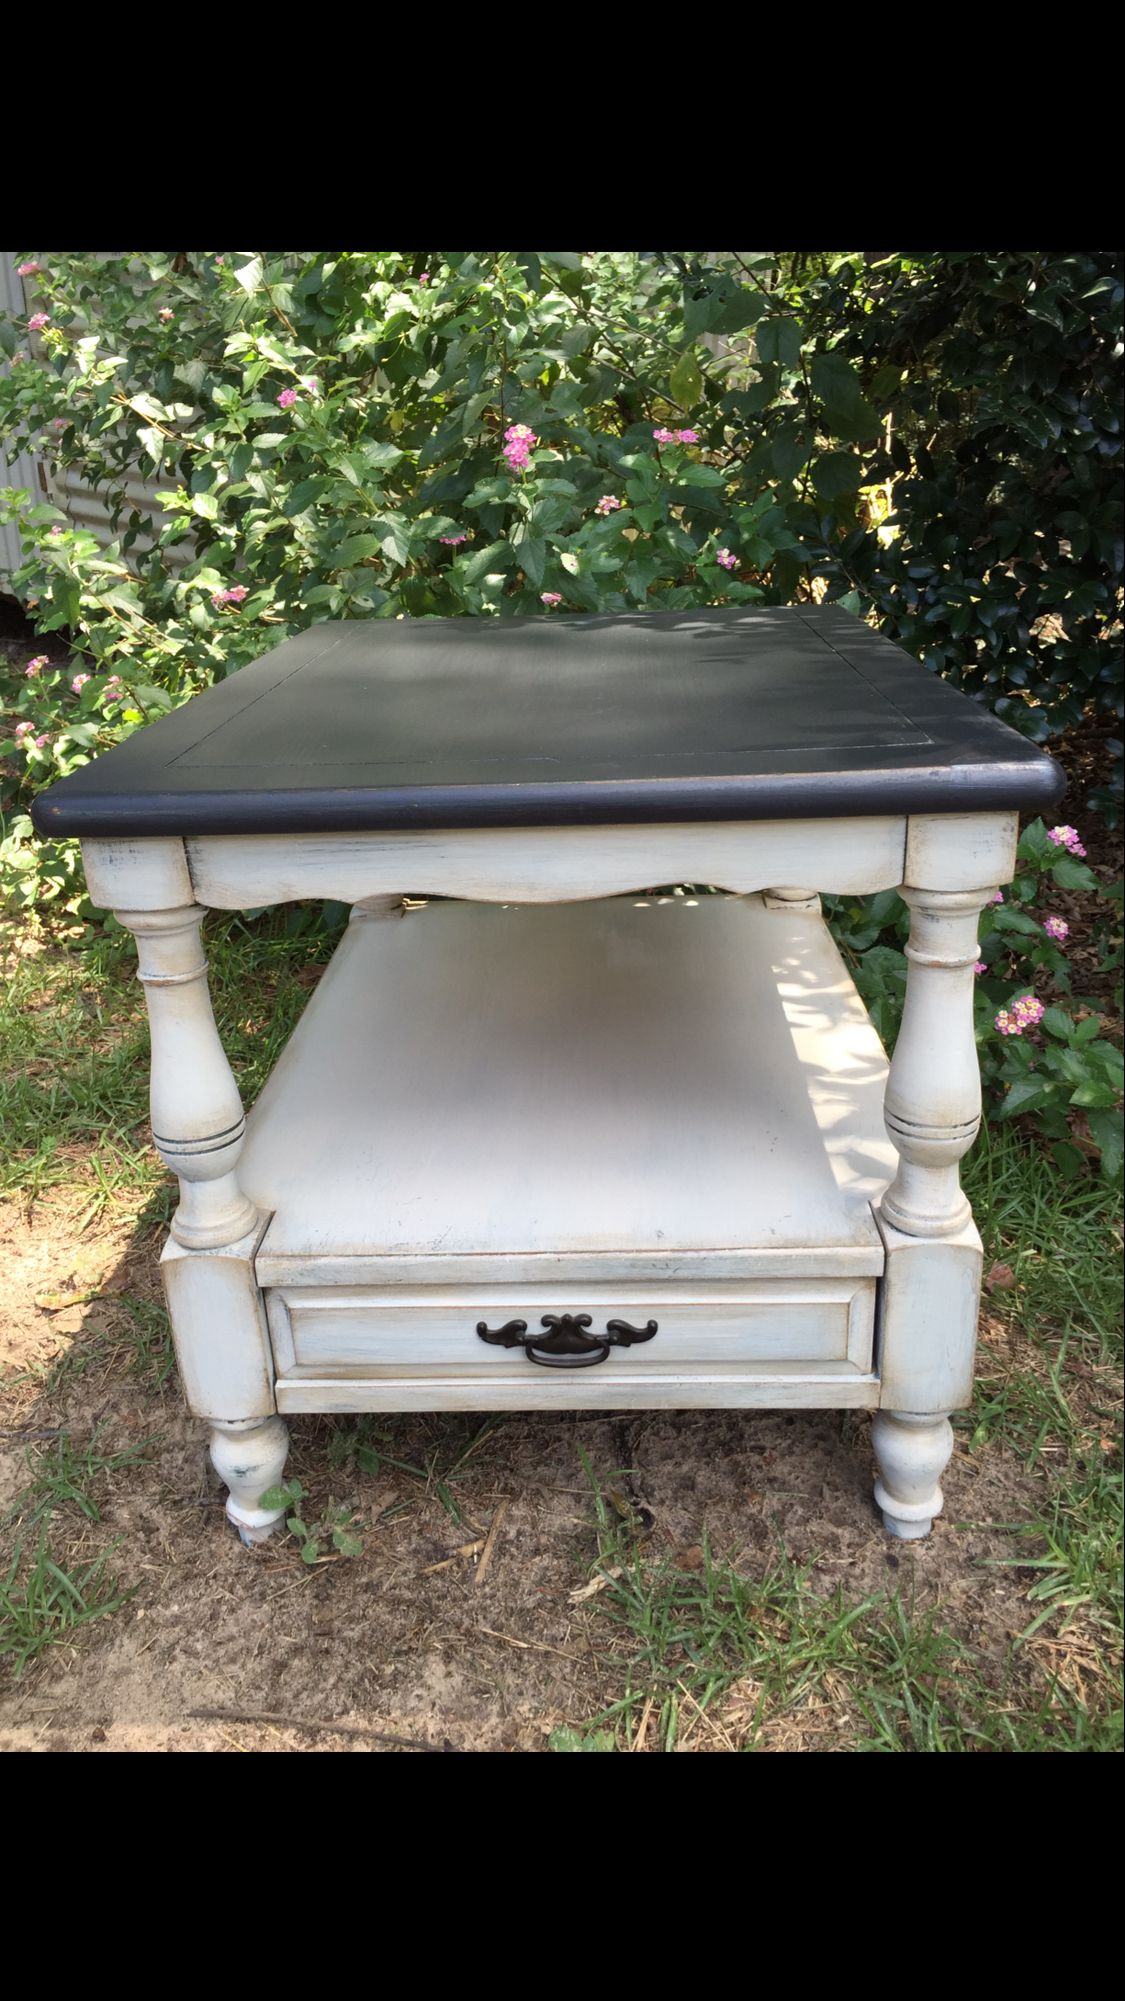 Furniture painting ideas techniques - Dixie Belle Paint Drop Cloth And Midnight Sky Paintiques By Lisa Harrison